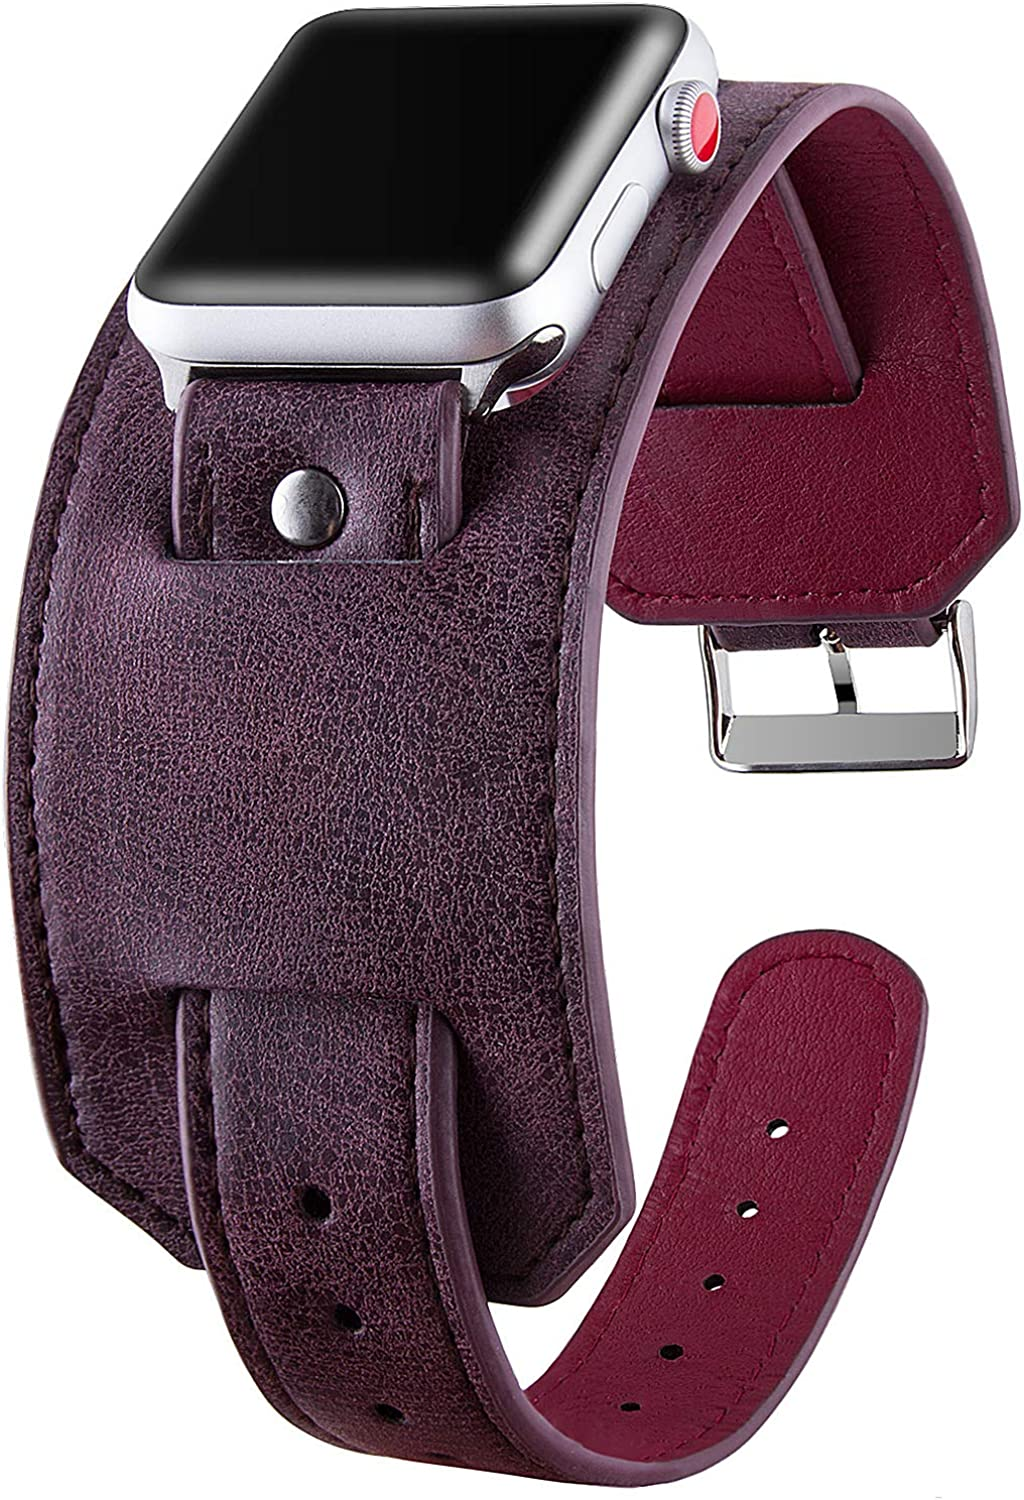 Vikoros Leather Cuff Bracelet Compatible with Apple Watch Band 38mm 40mm 42mm 44mm, Handmade Vintage Dressy Bangle Replacement Wristband Strap Compatible with iwatch Series 5 4 3 2 1 for Men Women